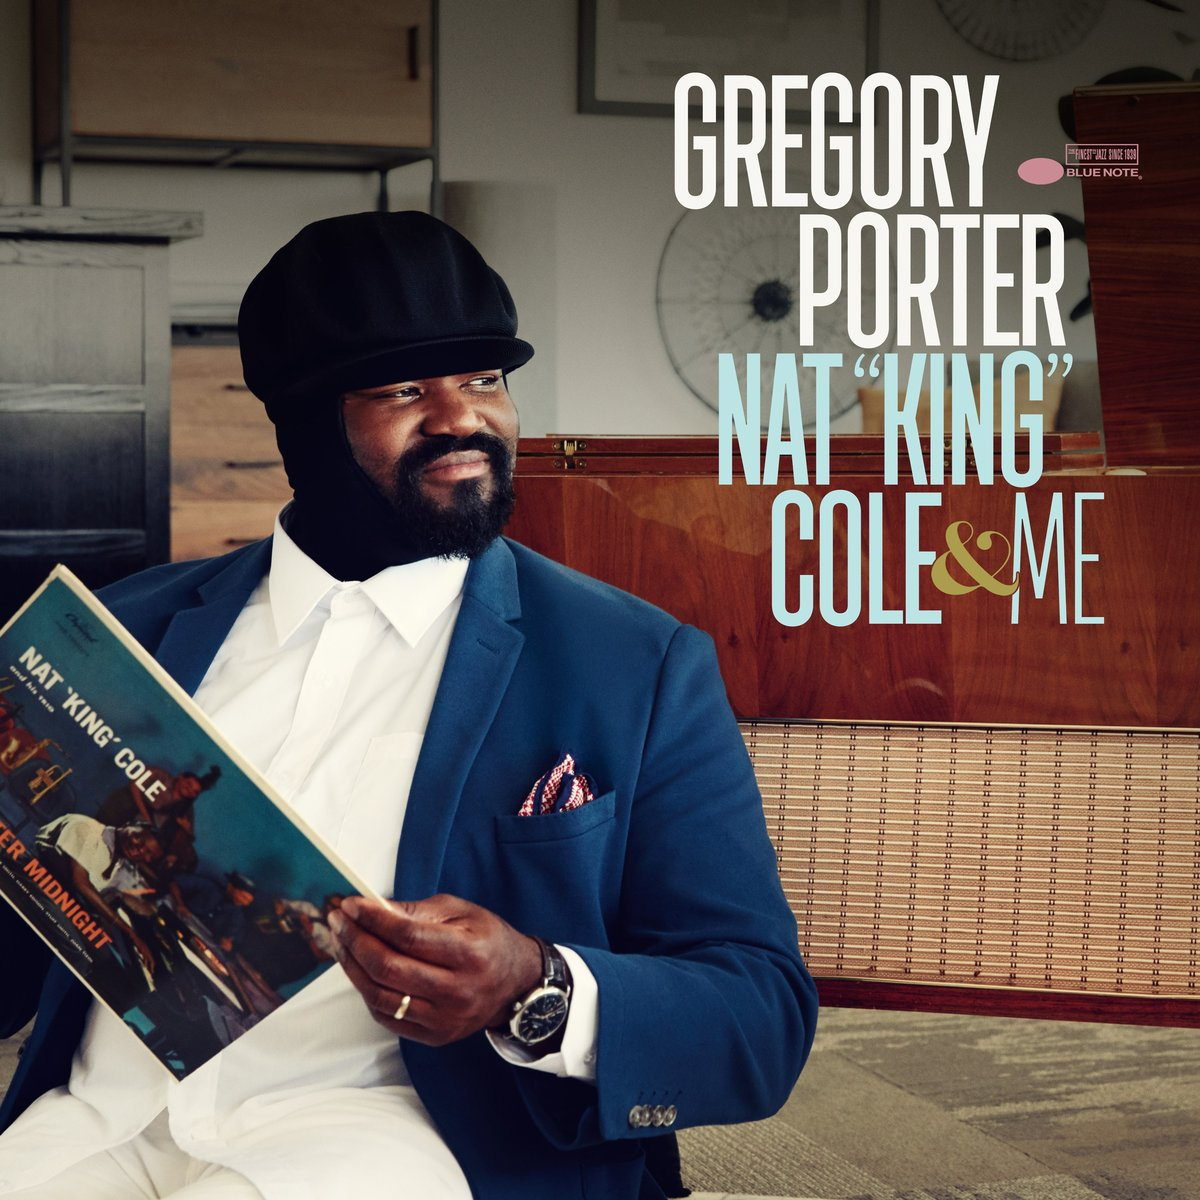 PORTER GREGORY – Nat King Cole & Me